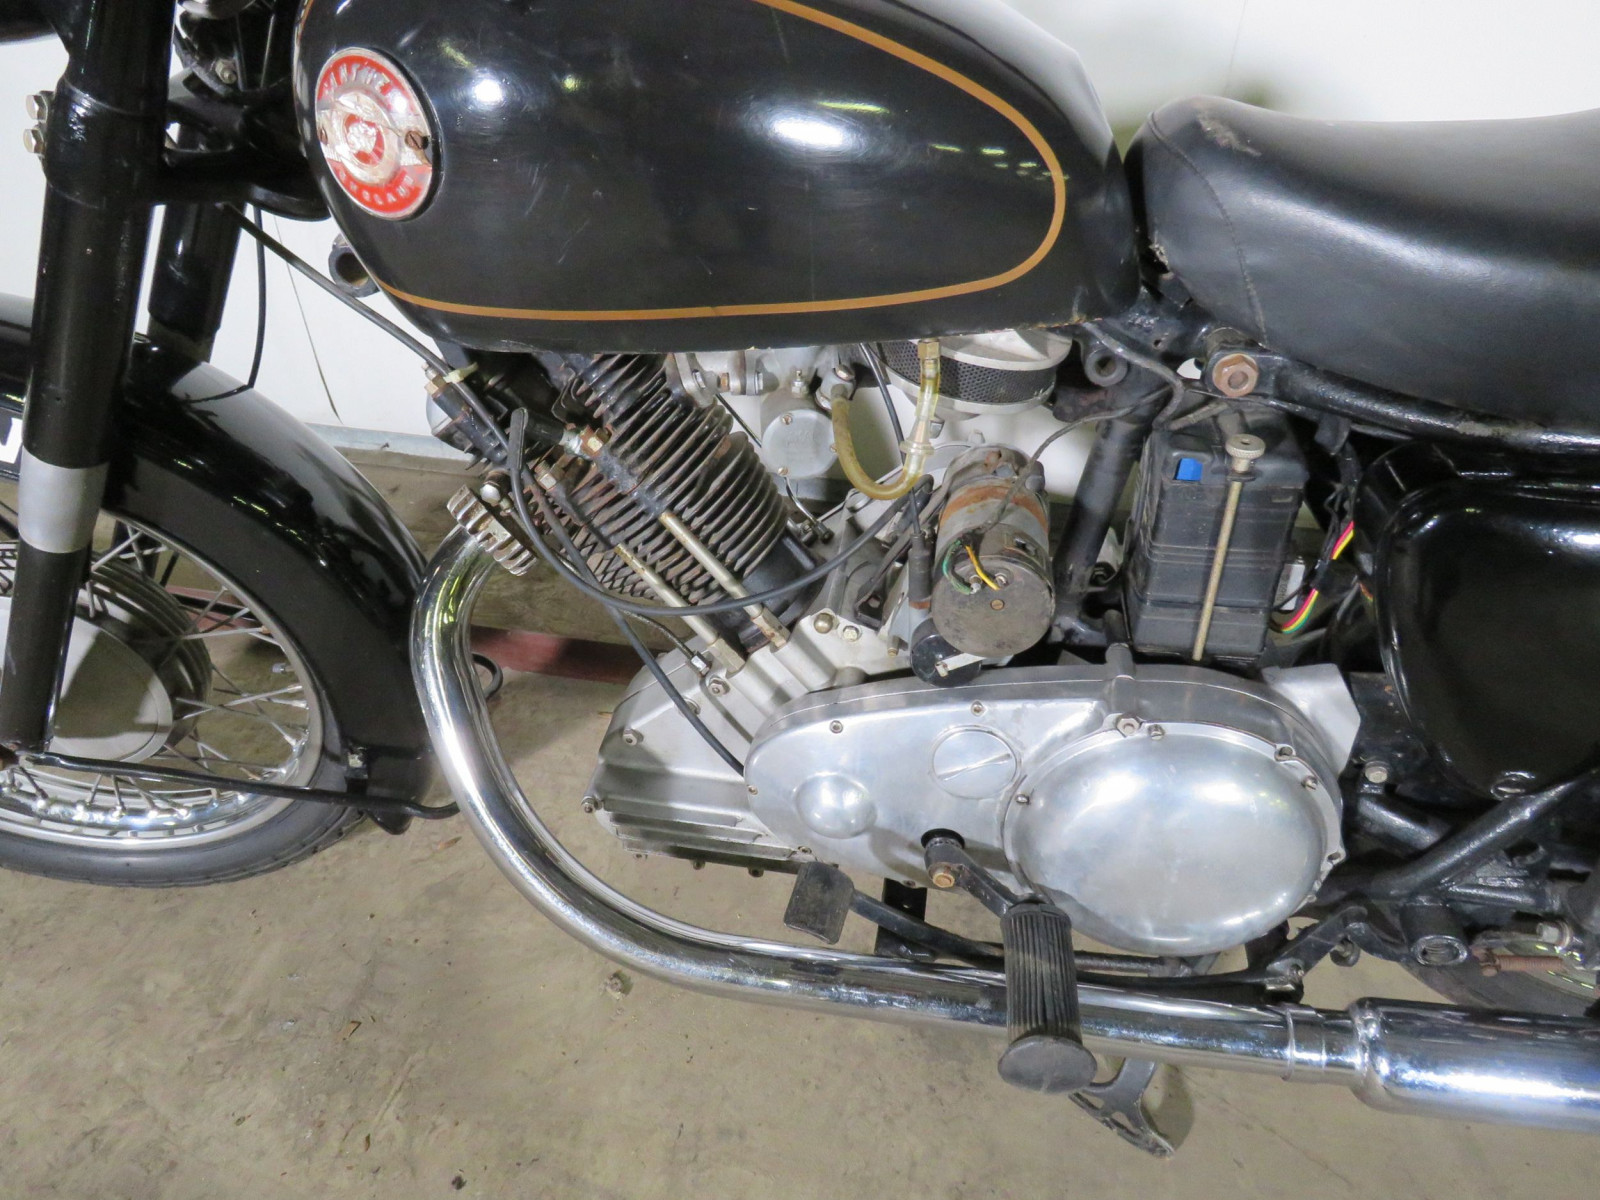 1959 Panther Model 120 Motorcycle - Image 8